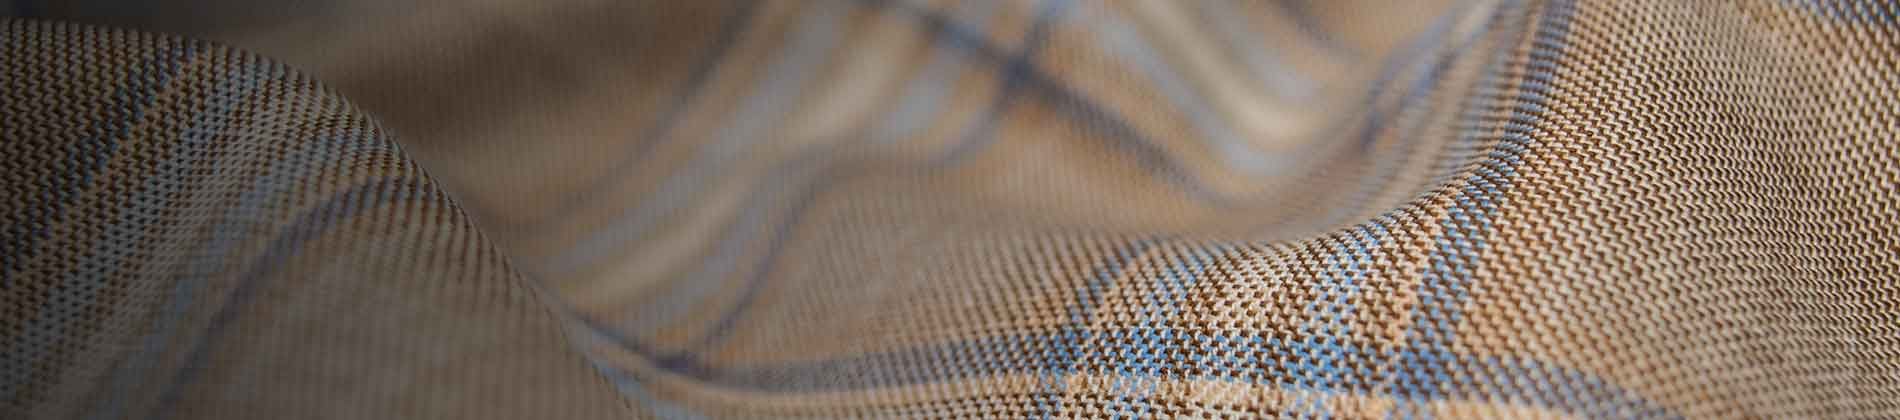 Carlo Barbera Jacketing fabric collection woven in Italy for Gladson